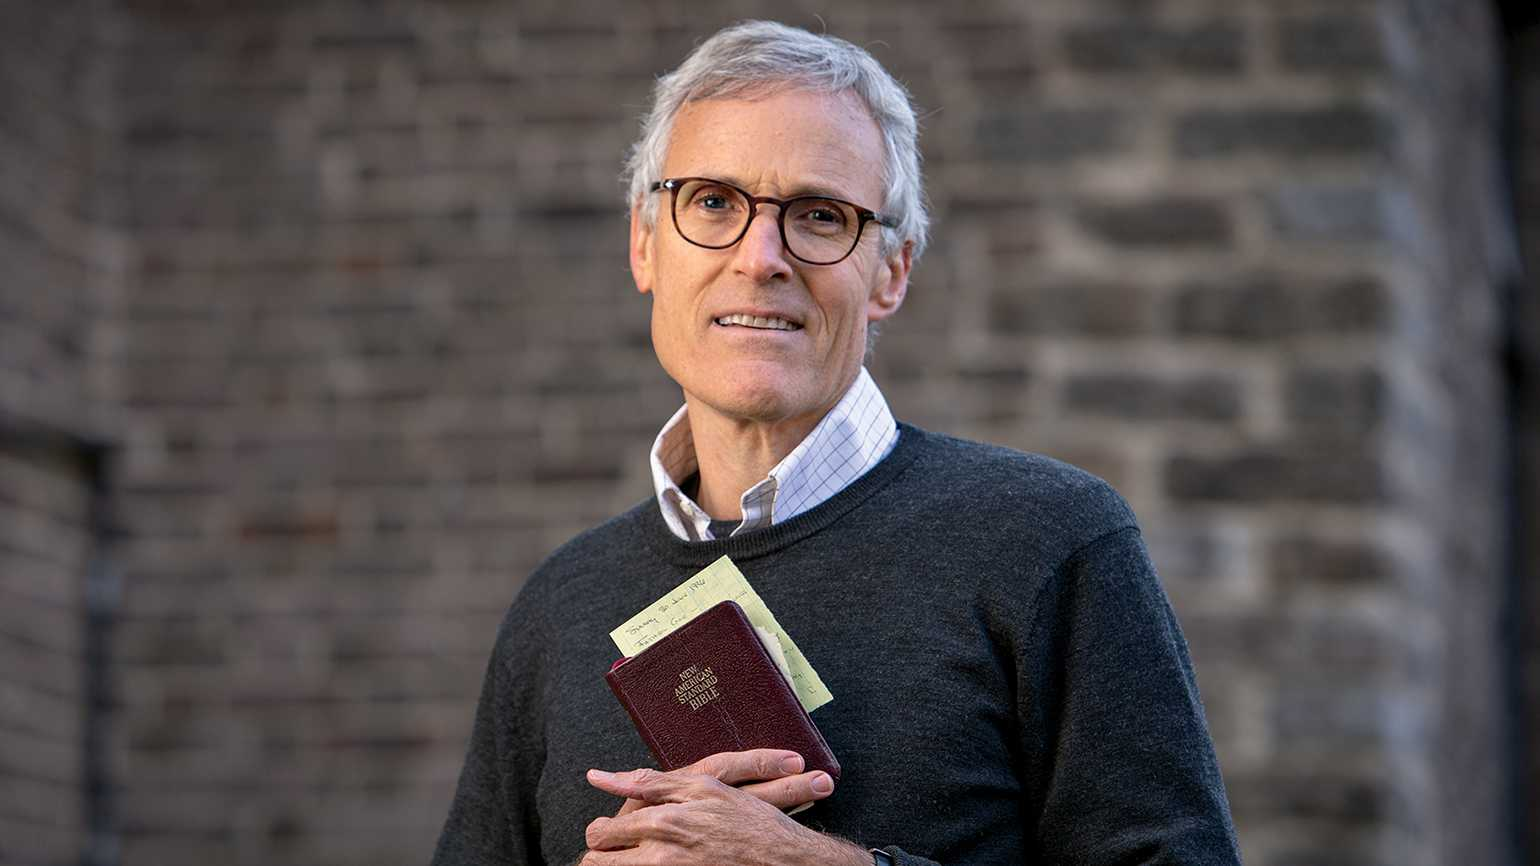 Rick Hamlin with his father's Bible; photo by Jim Anness